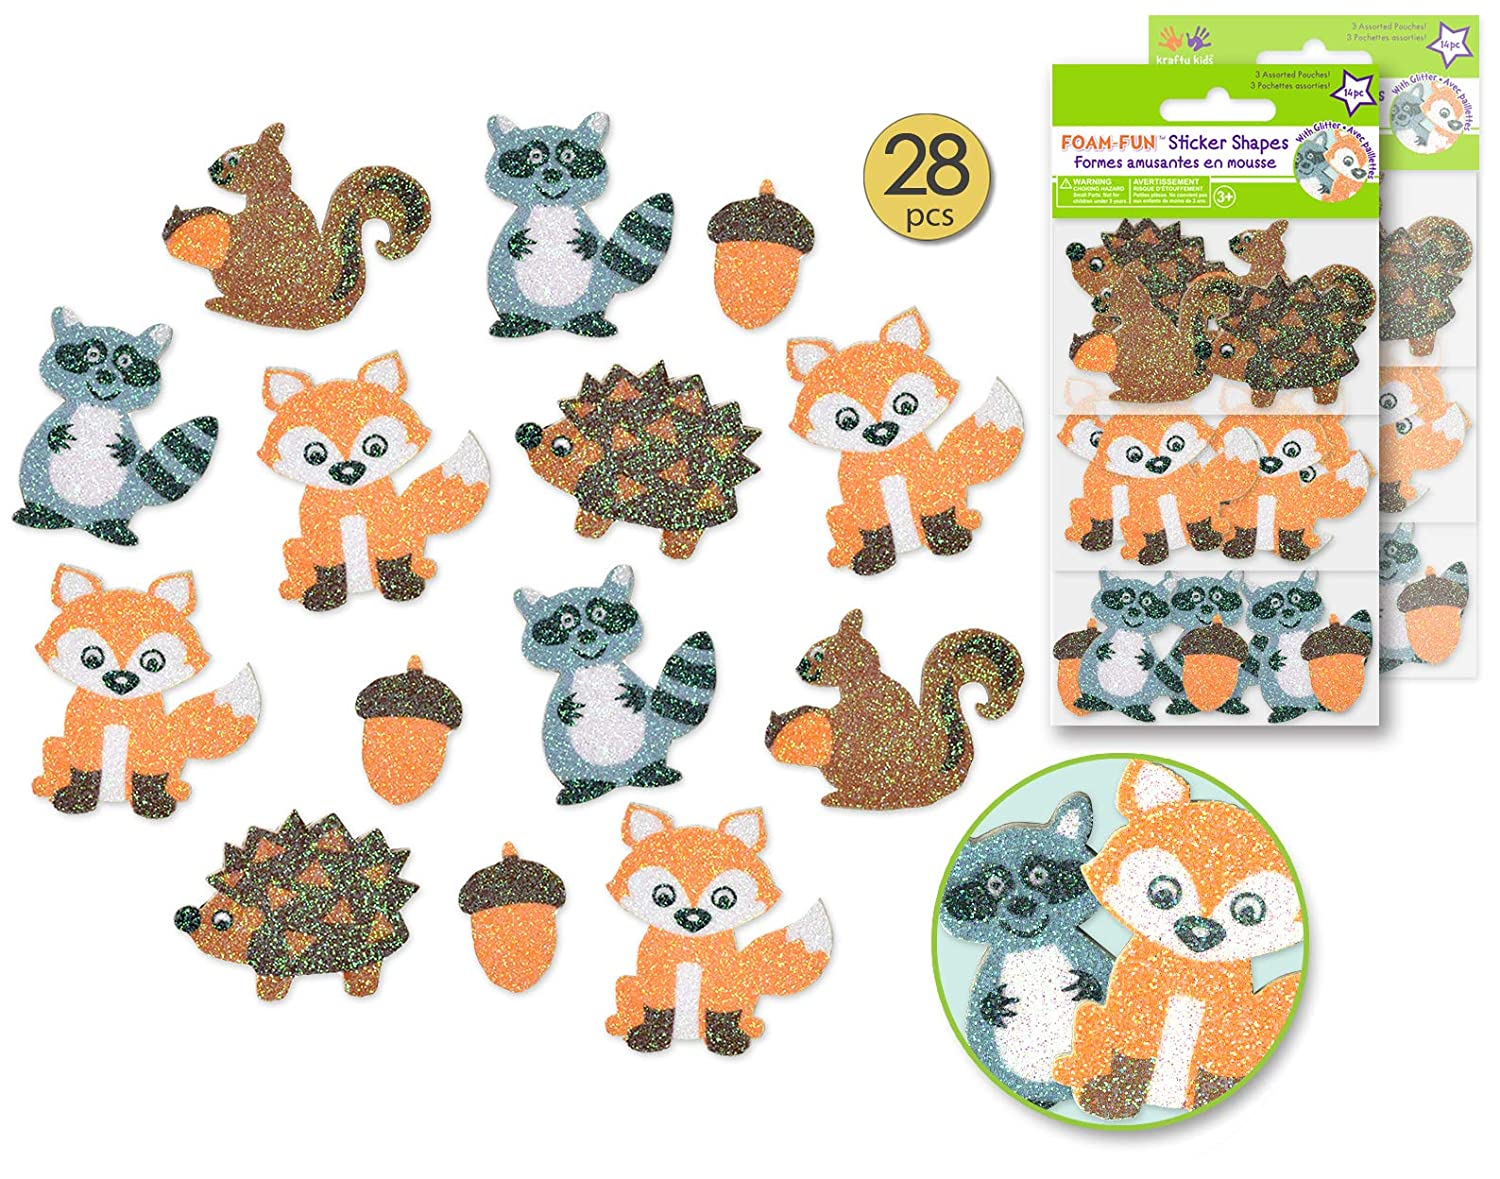 28 Pcs Woodland Animal Stickers Glitter Stickers Forest Stickers Woodland Animals Baby Shower Woodland Baby Shower Decorations Woodland Party Supplies Woodland Creatures Baby Shower 2 Packs